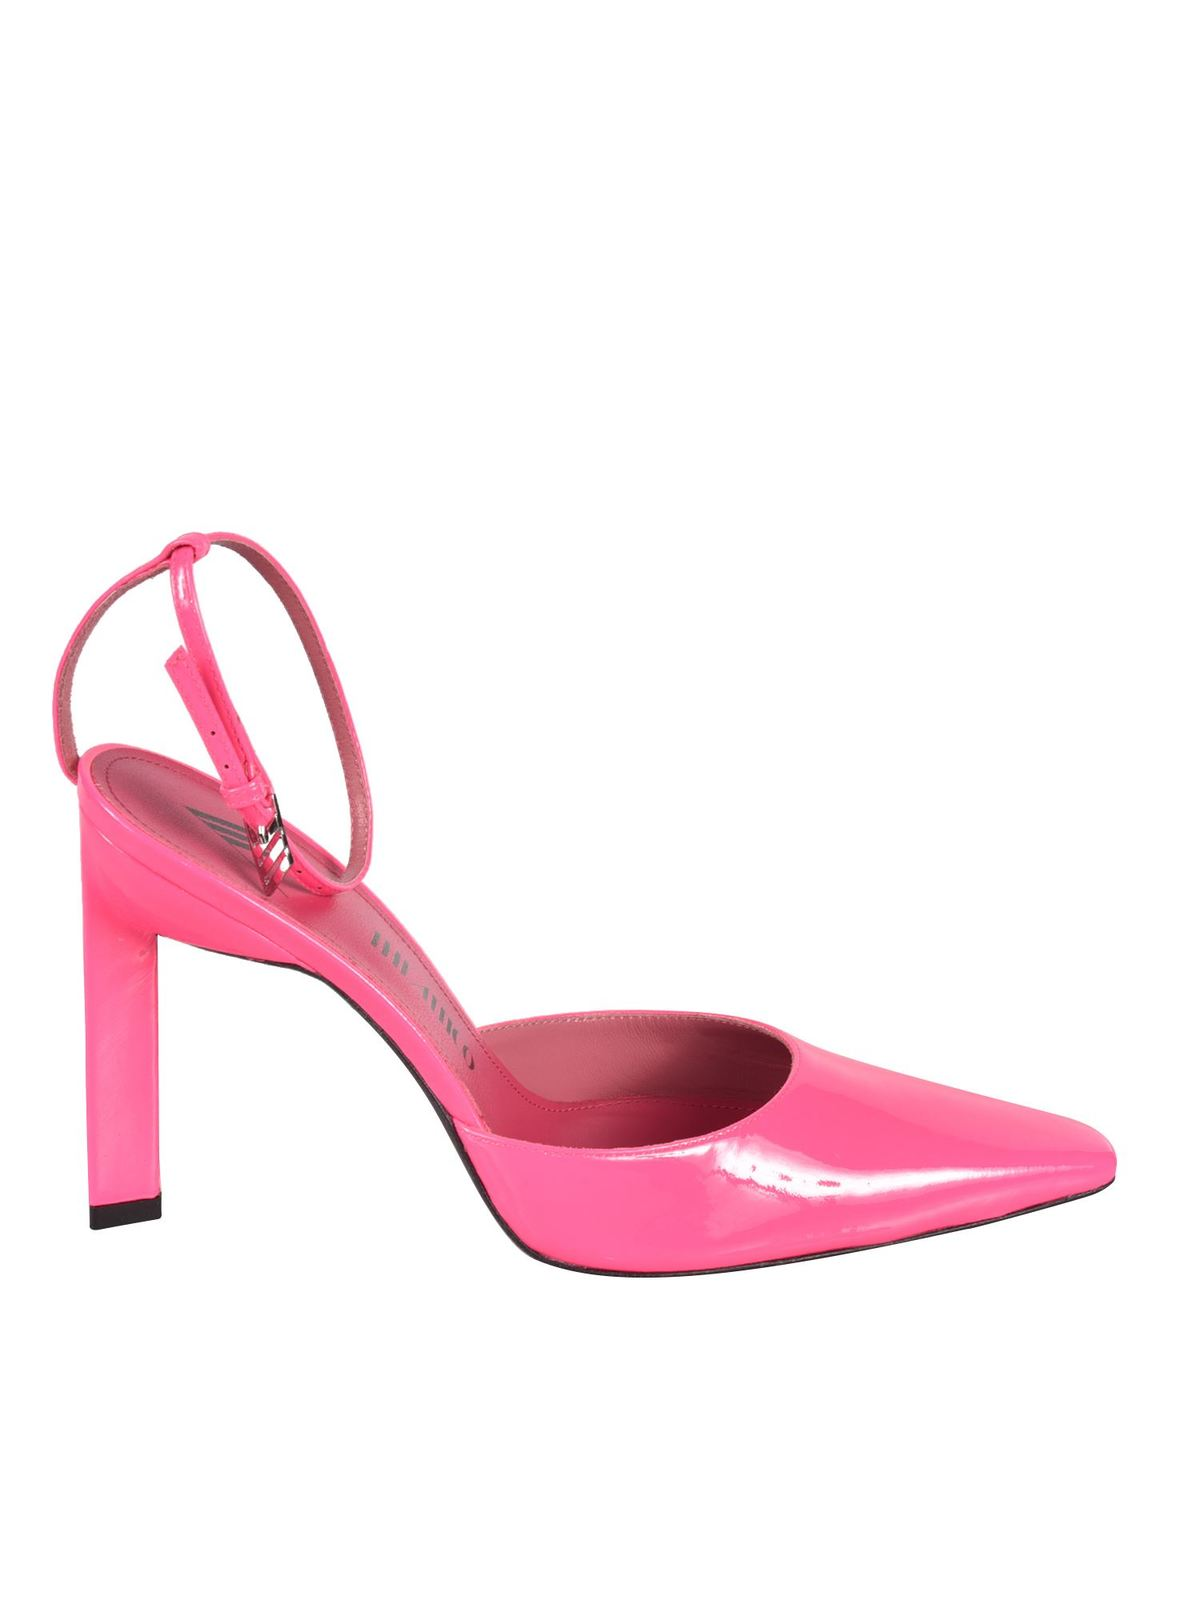 Attico AMBER SLINGBACK PUMPS IN FLUO PINK